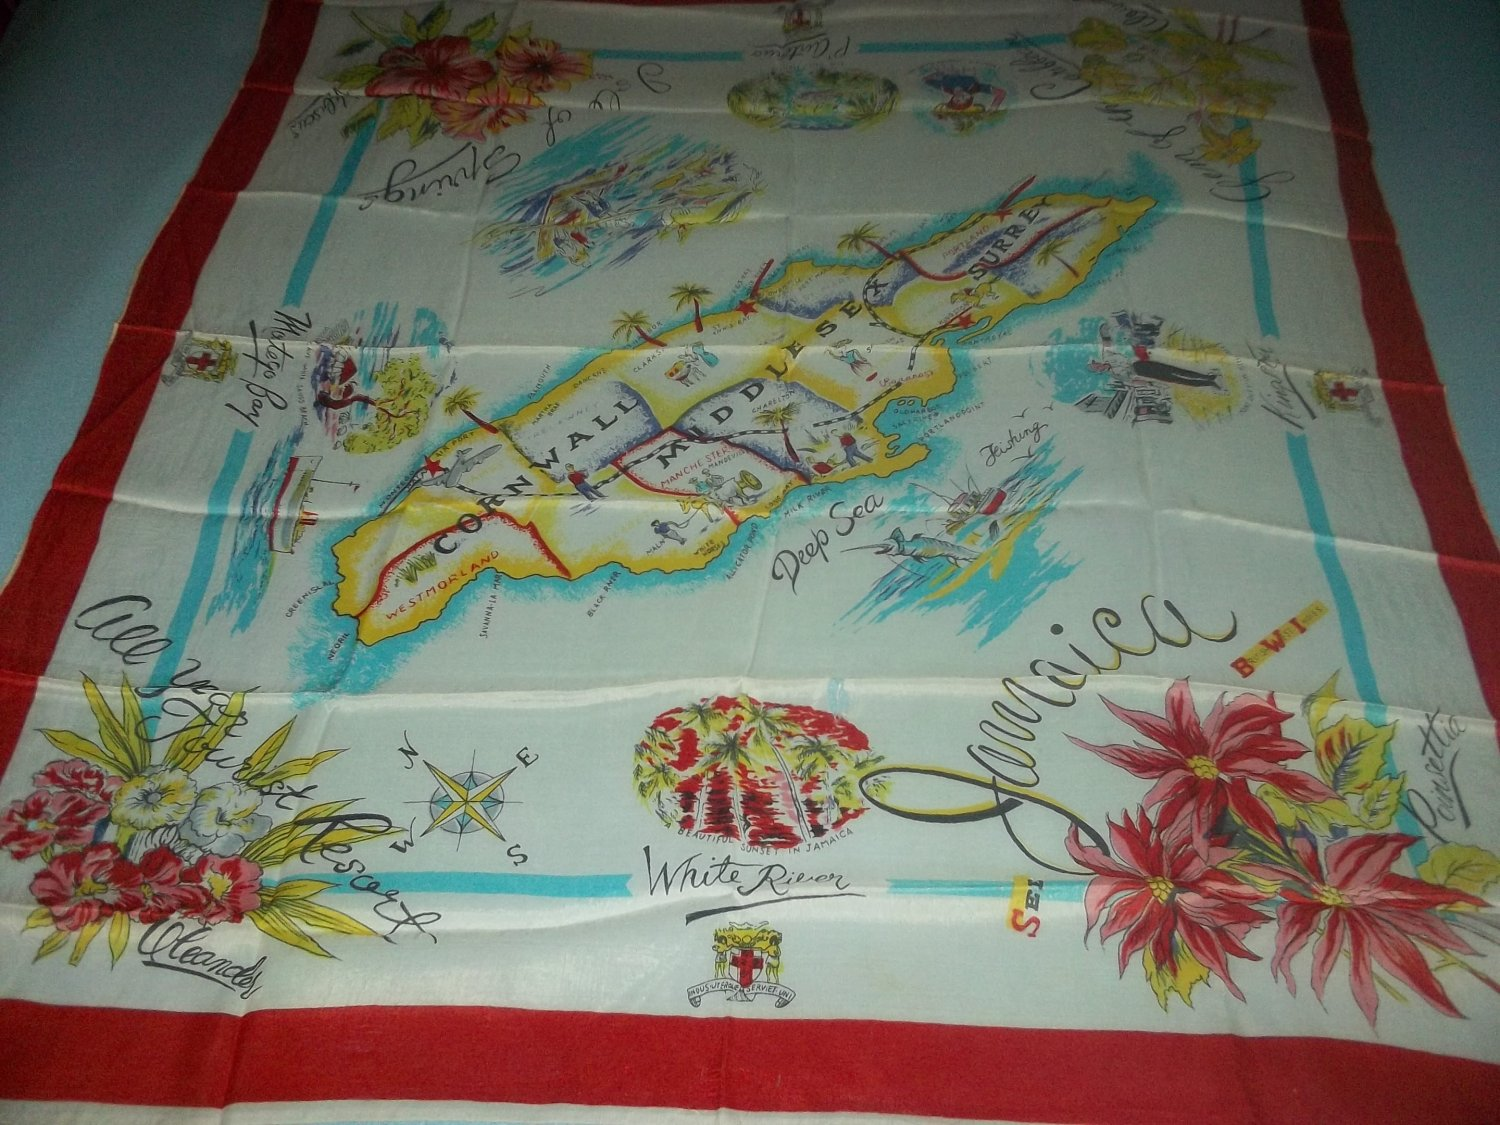 VINTAGE JAMAICA SOUVENIR SCARF ~KINGSTON, MONTEGO BAY~COLORFUL MAP, FLOWERS